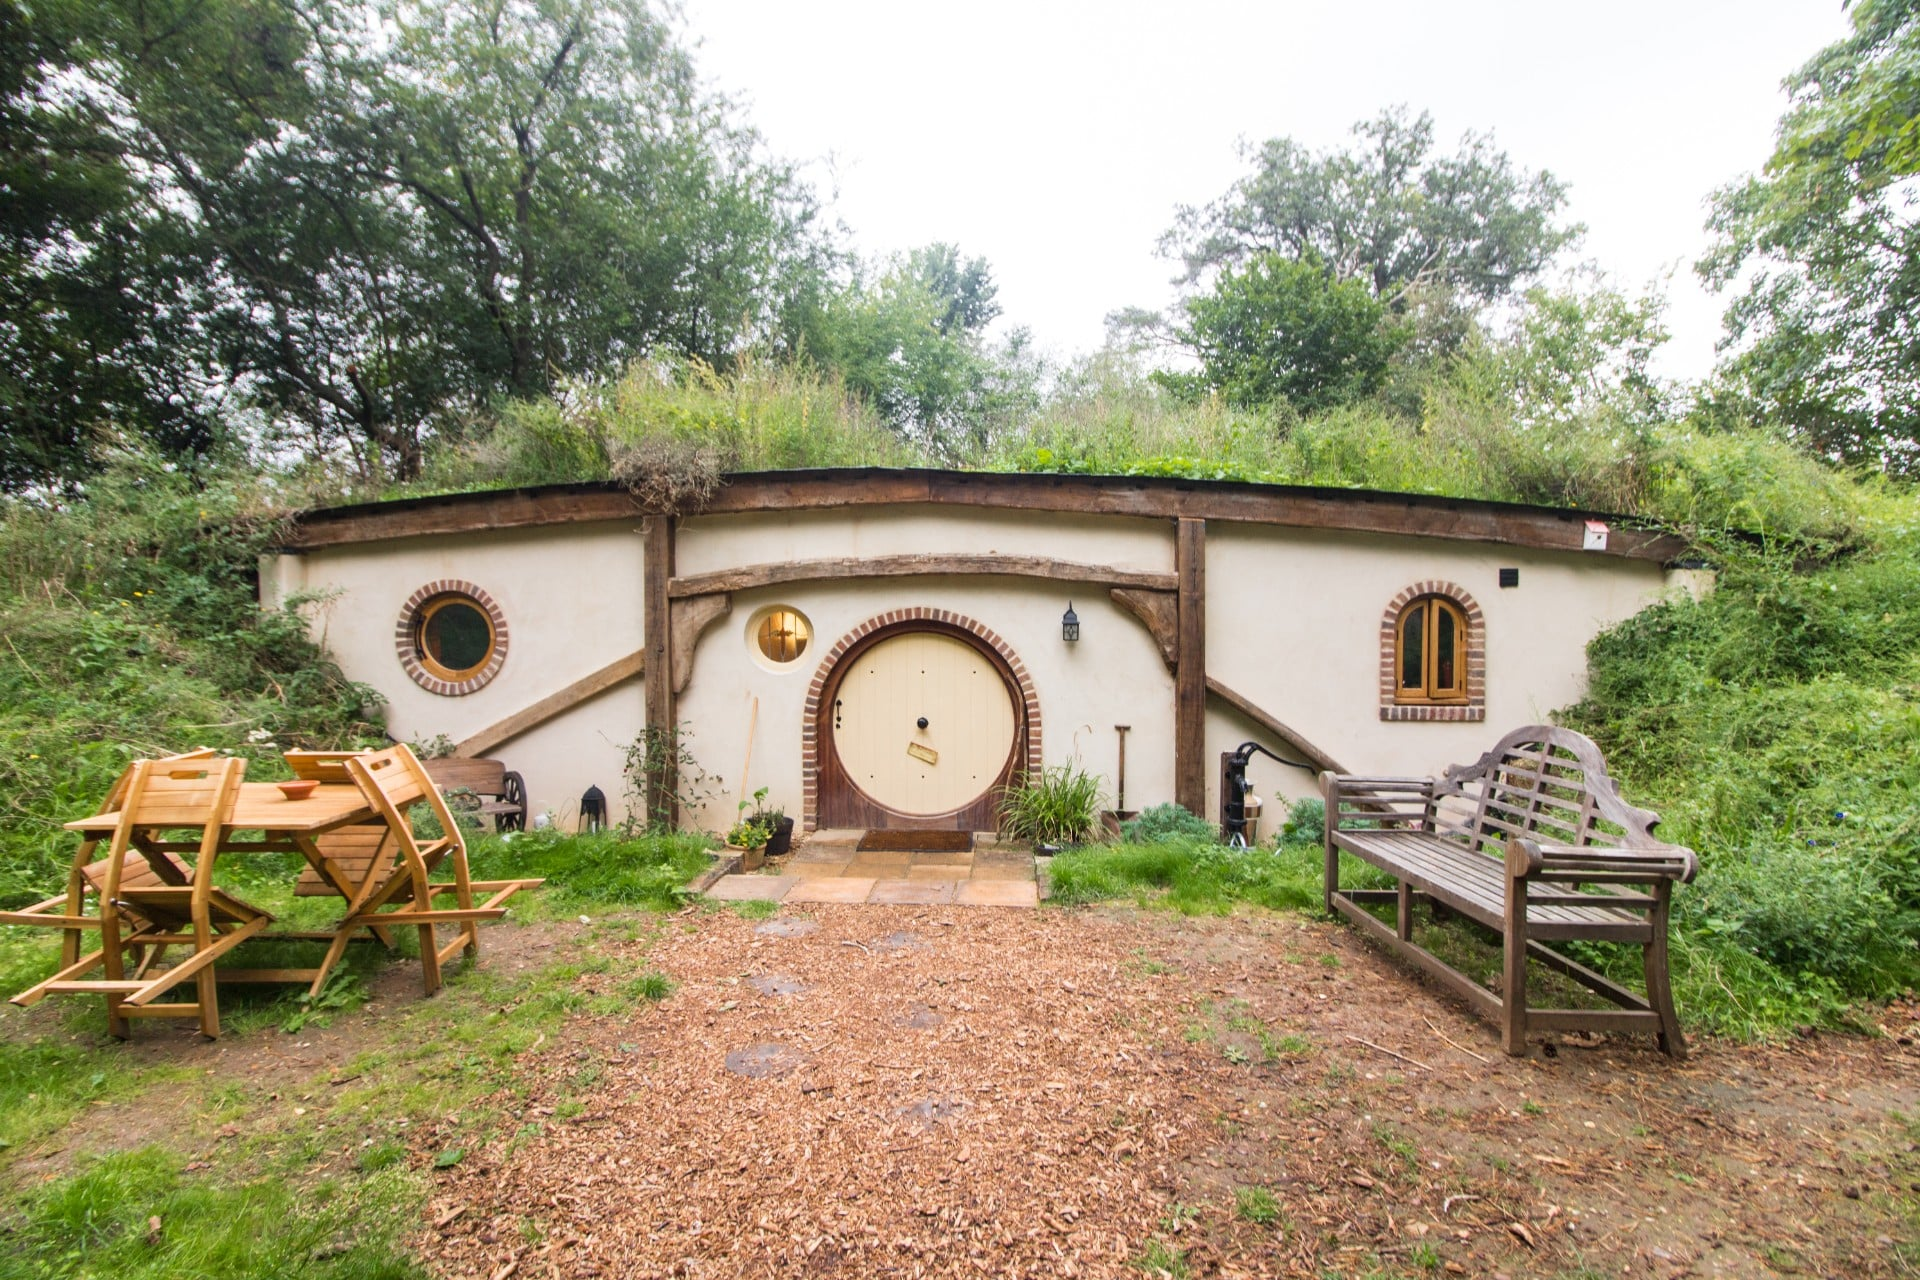 hobbit-hole-hobbit-house-glamping-site-in-suffolk-woodland-pod-hollow-west-stow-pods